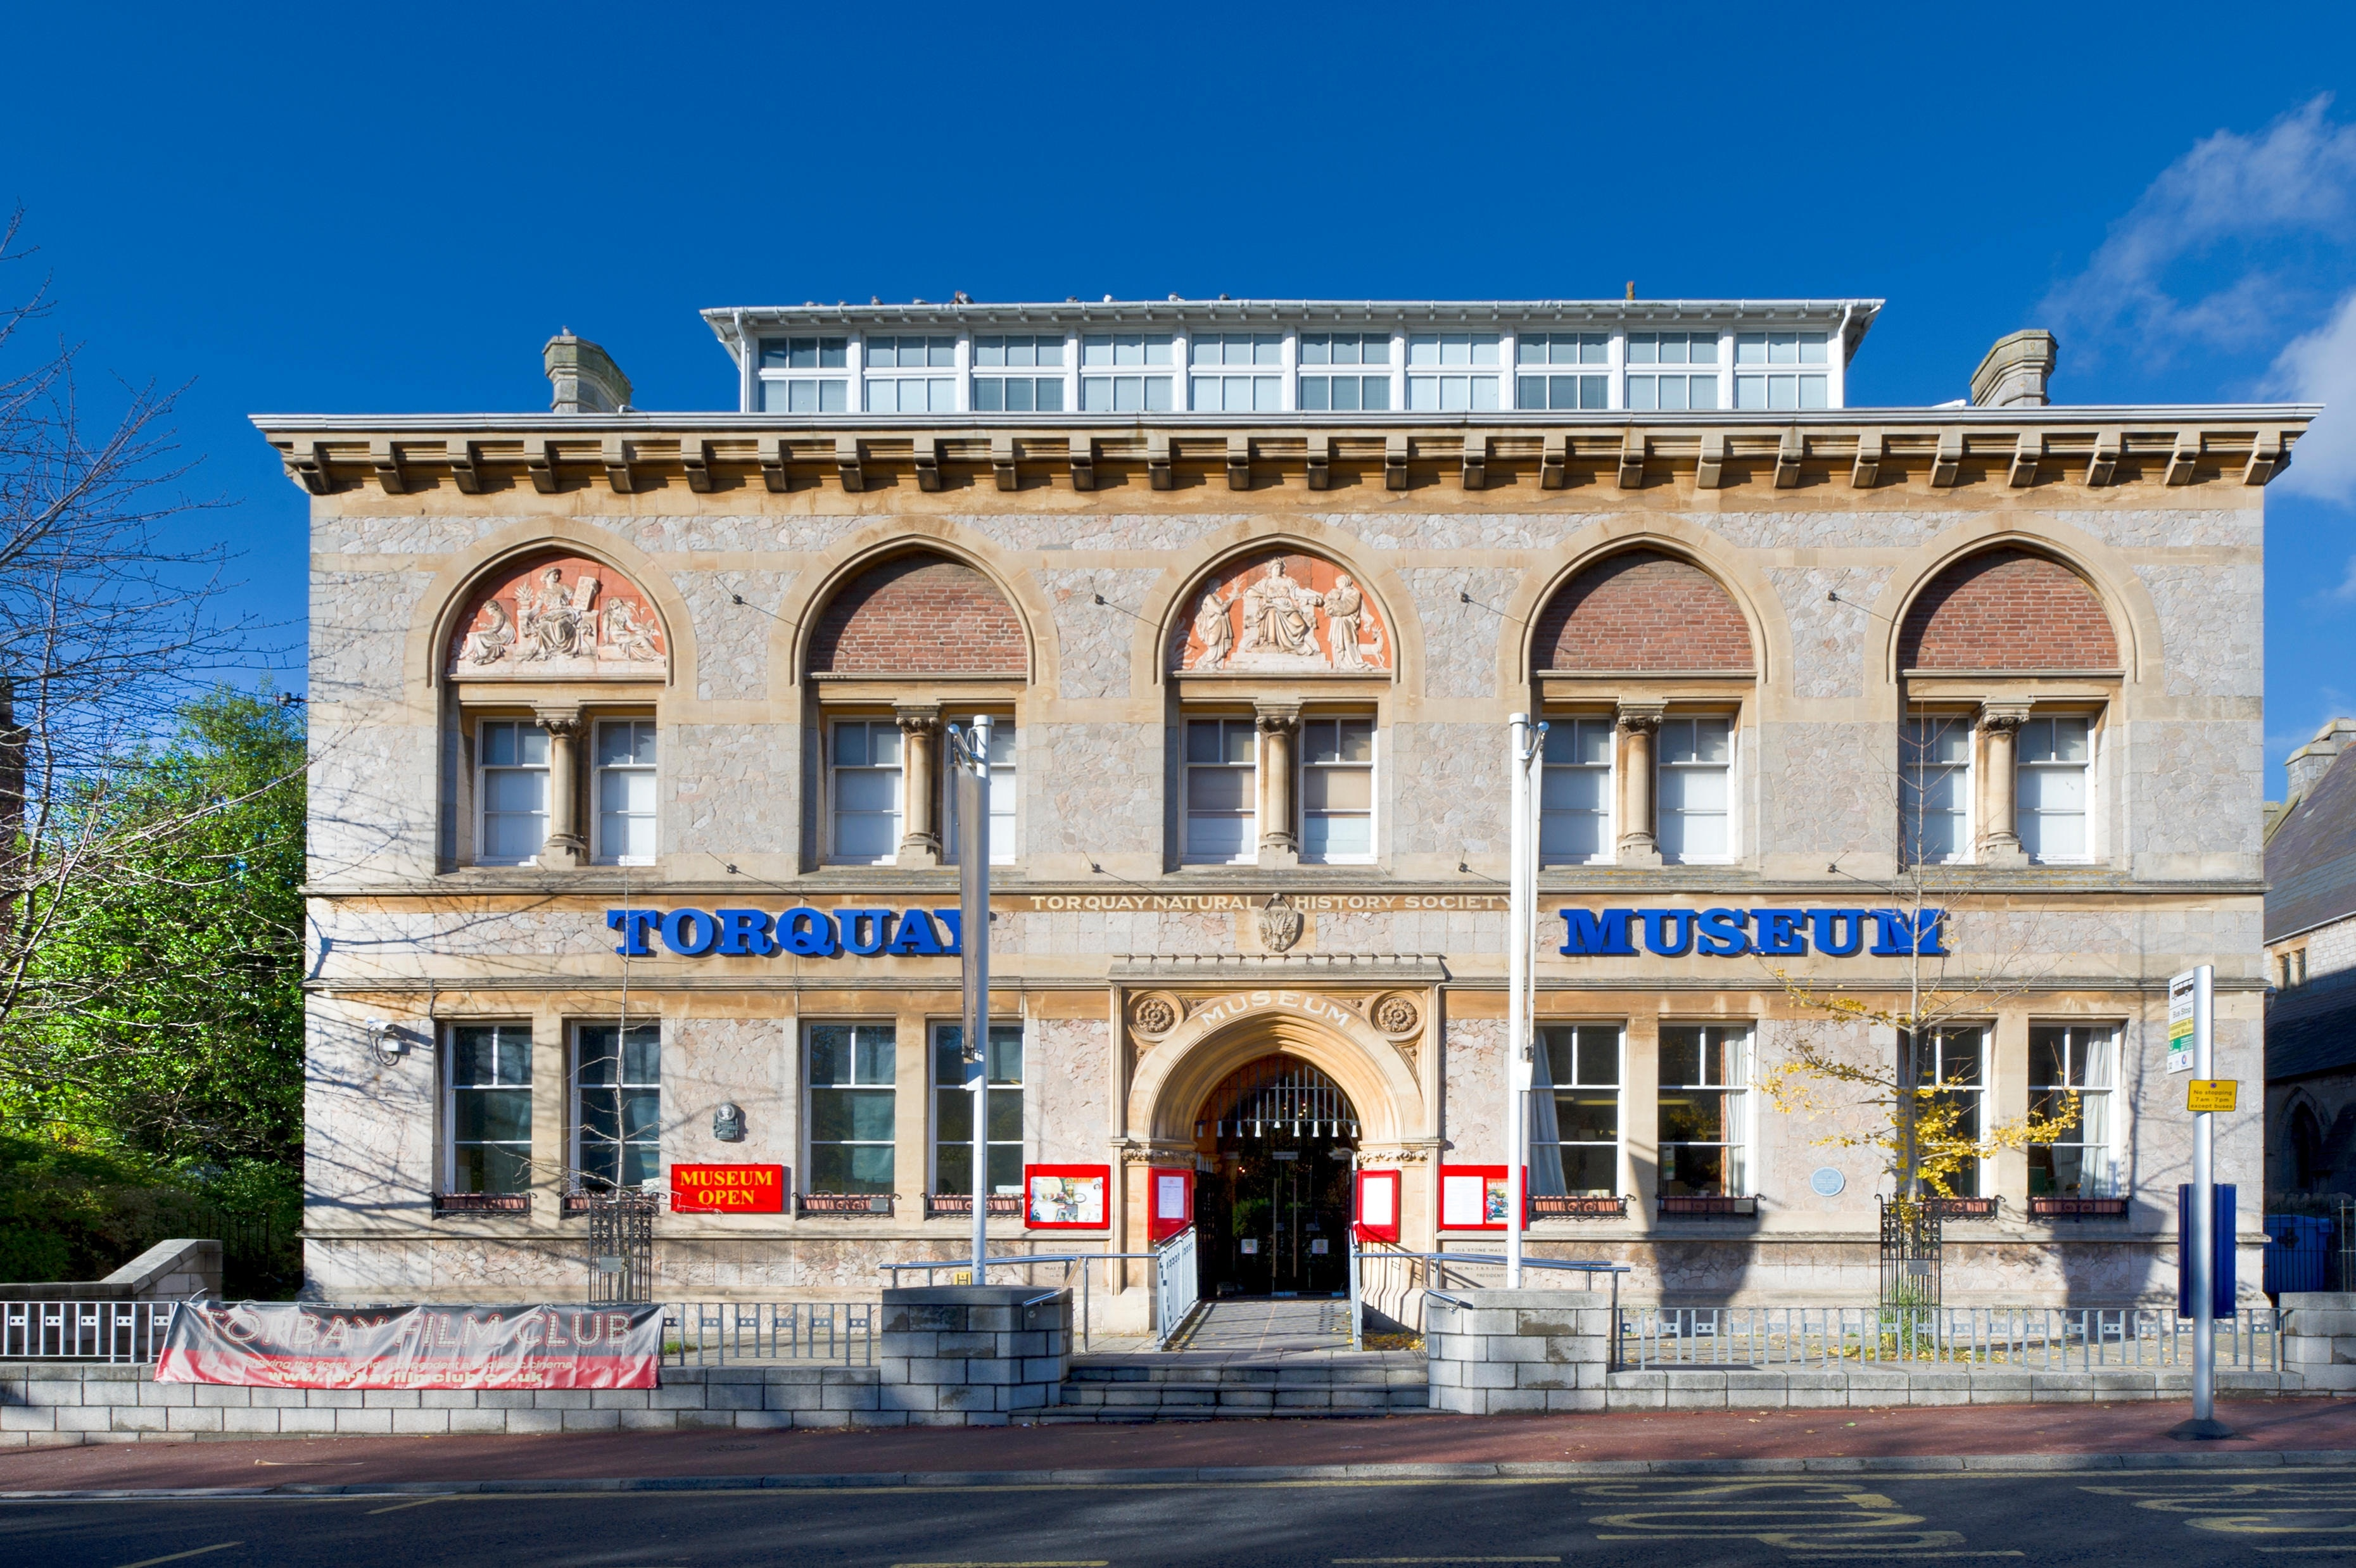 Learn about natural history, local traditions and Torquay's most famous daughter, Agatha Christie, at this family-friendly attraction in a Victorian-era building.